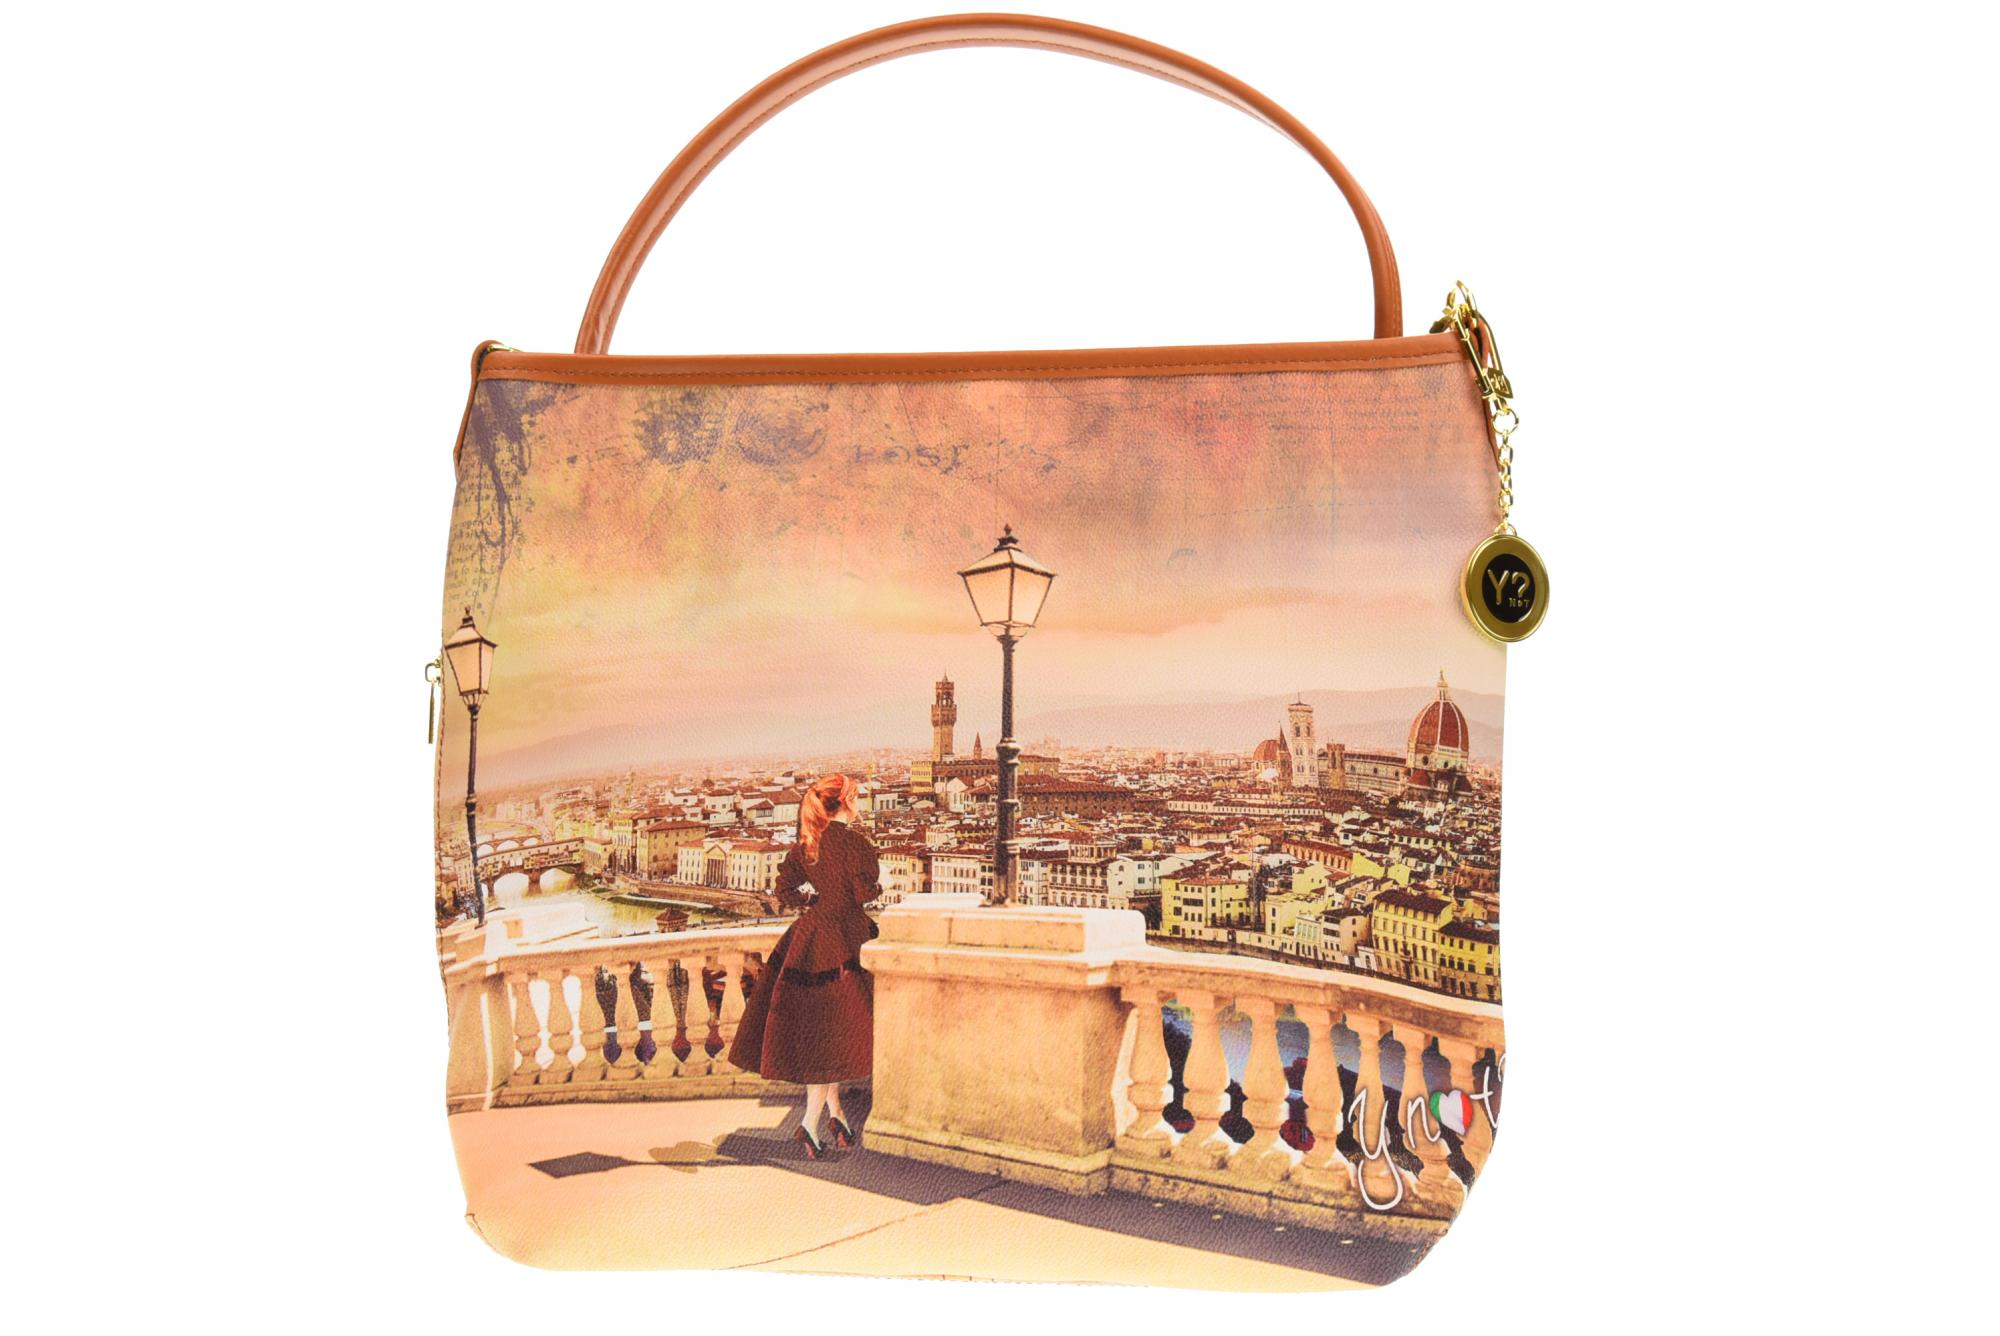 Donna Not Tracolla K Borsa 349 Florence Con A18 Sacca Y Ebay BEqRxRw